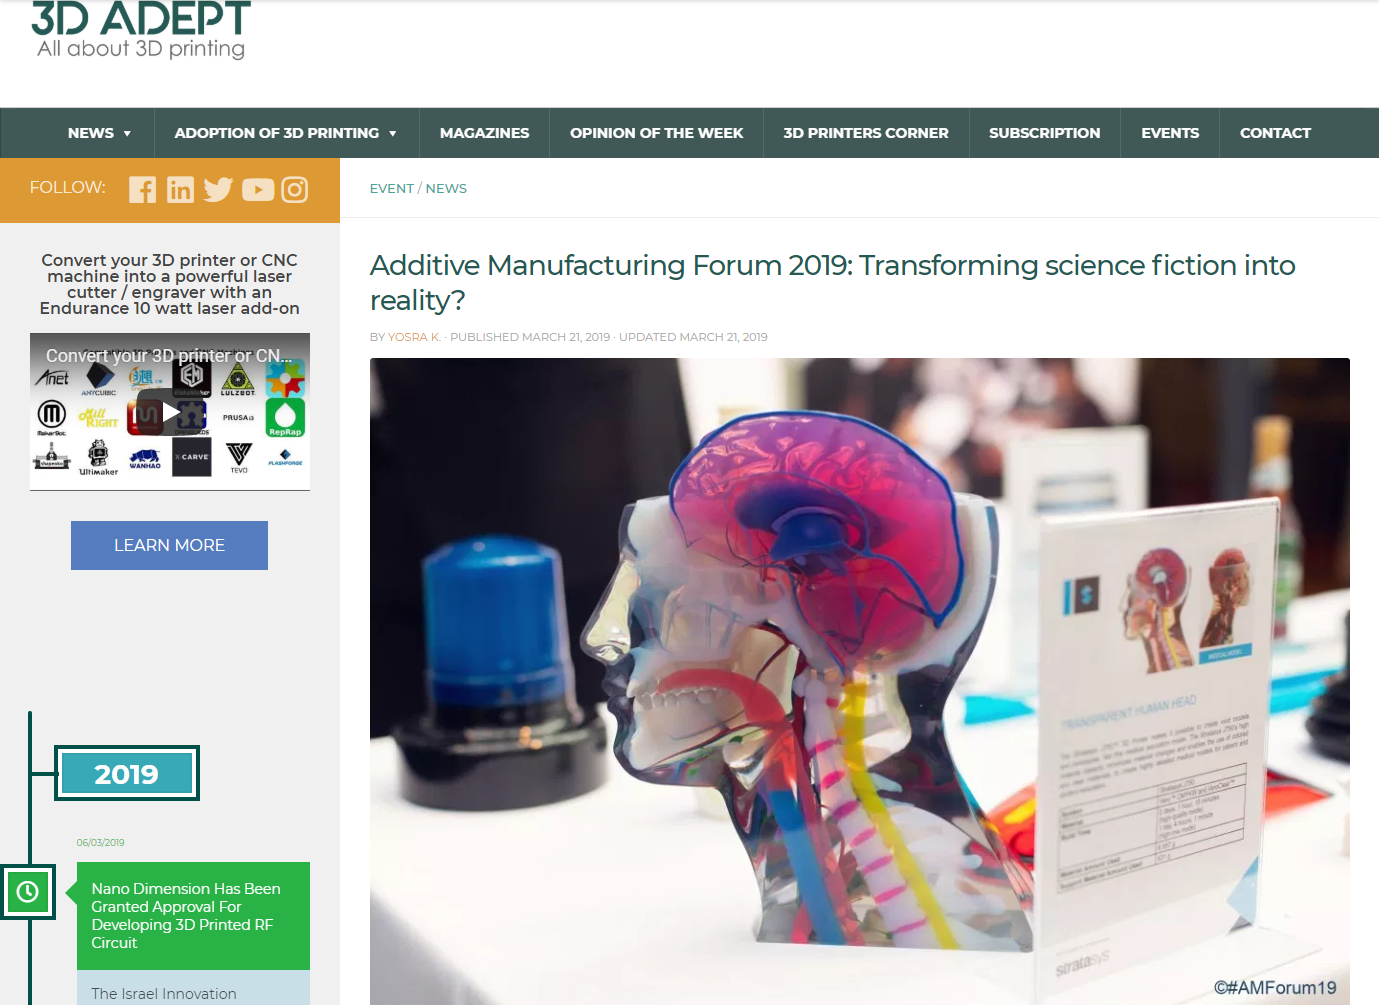 Transforming science into reality? - Additive Manufacturing Forum has been initiated by Airbus, Deutsche Bahn, Stratasys, 3yourmind and Mobility goes Additive. The European conference and exhibition that took place last week on March 14th and 15th aimed at connecting players of the industry with OEMs and other companies that might…